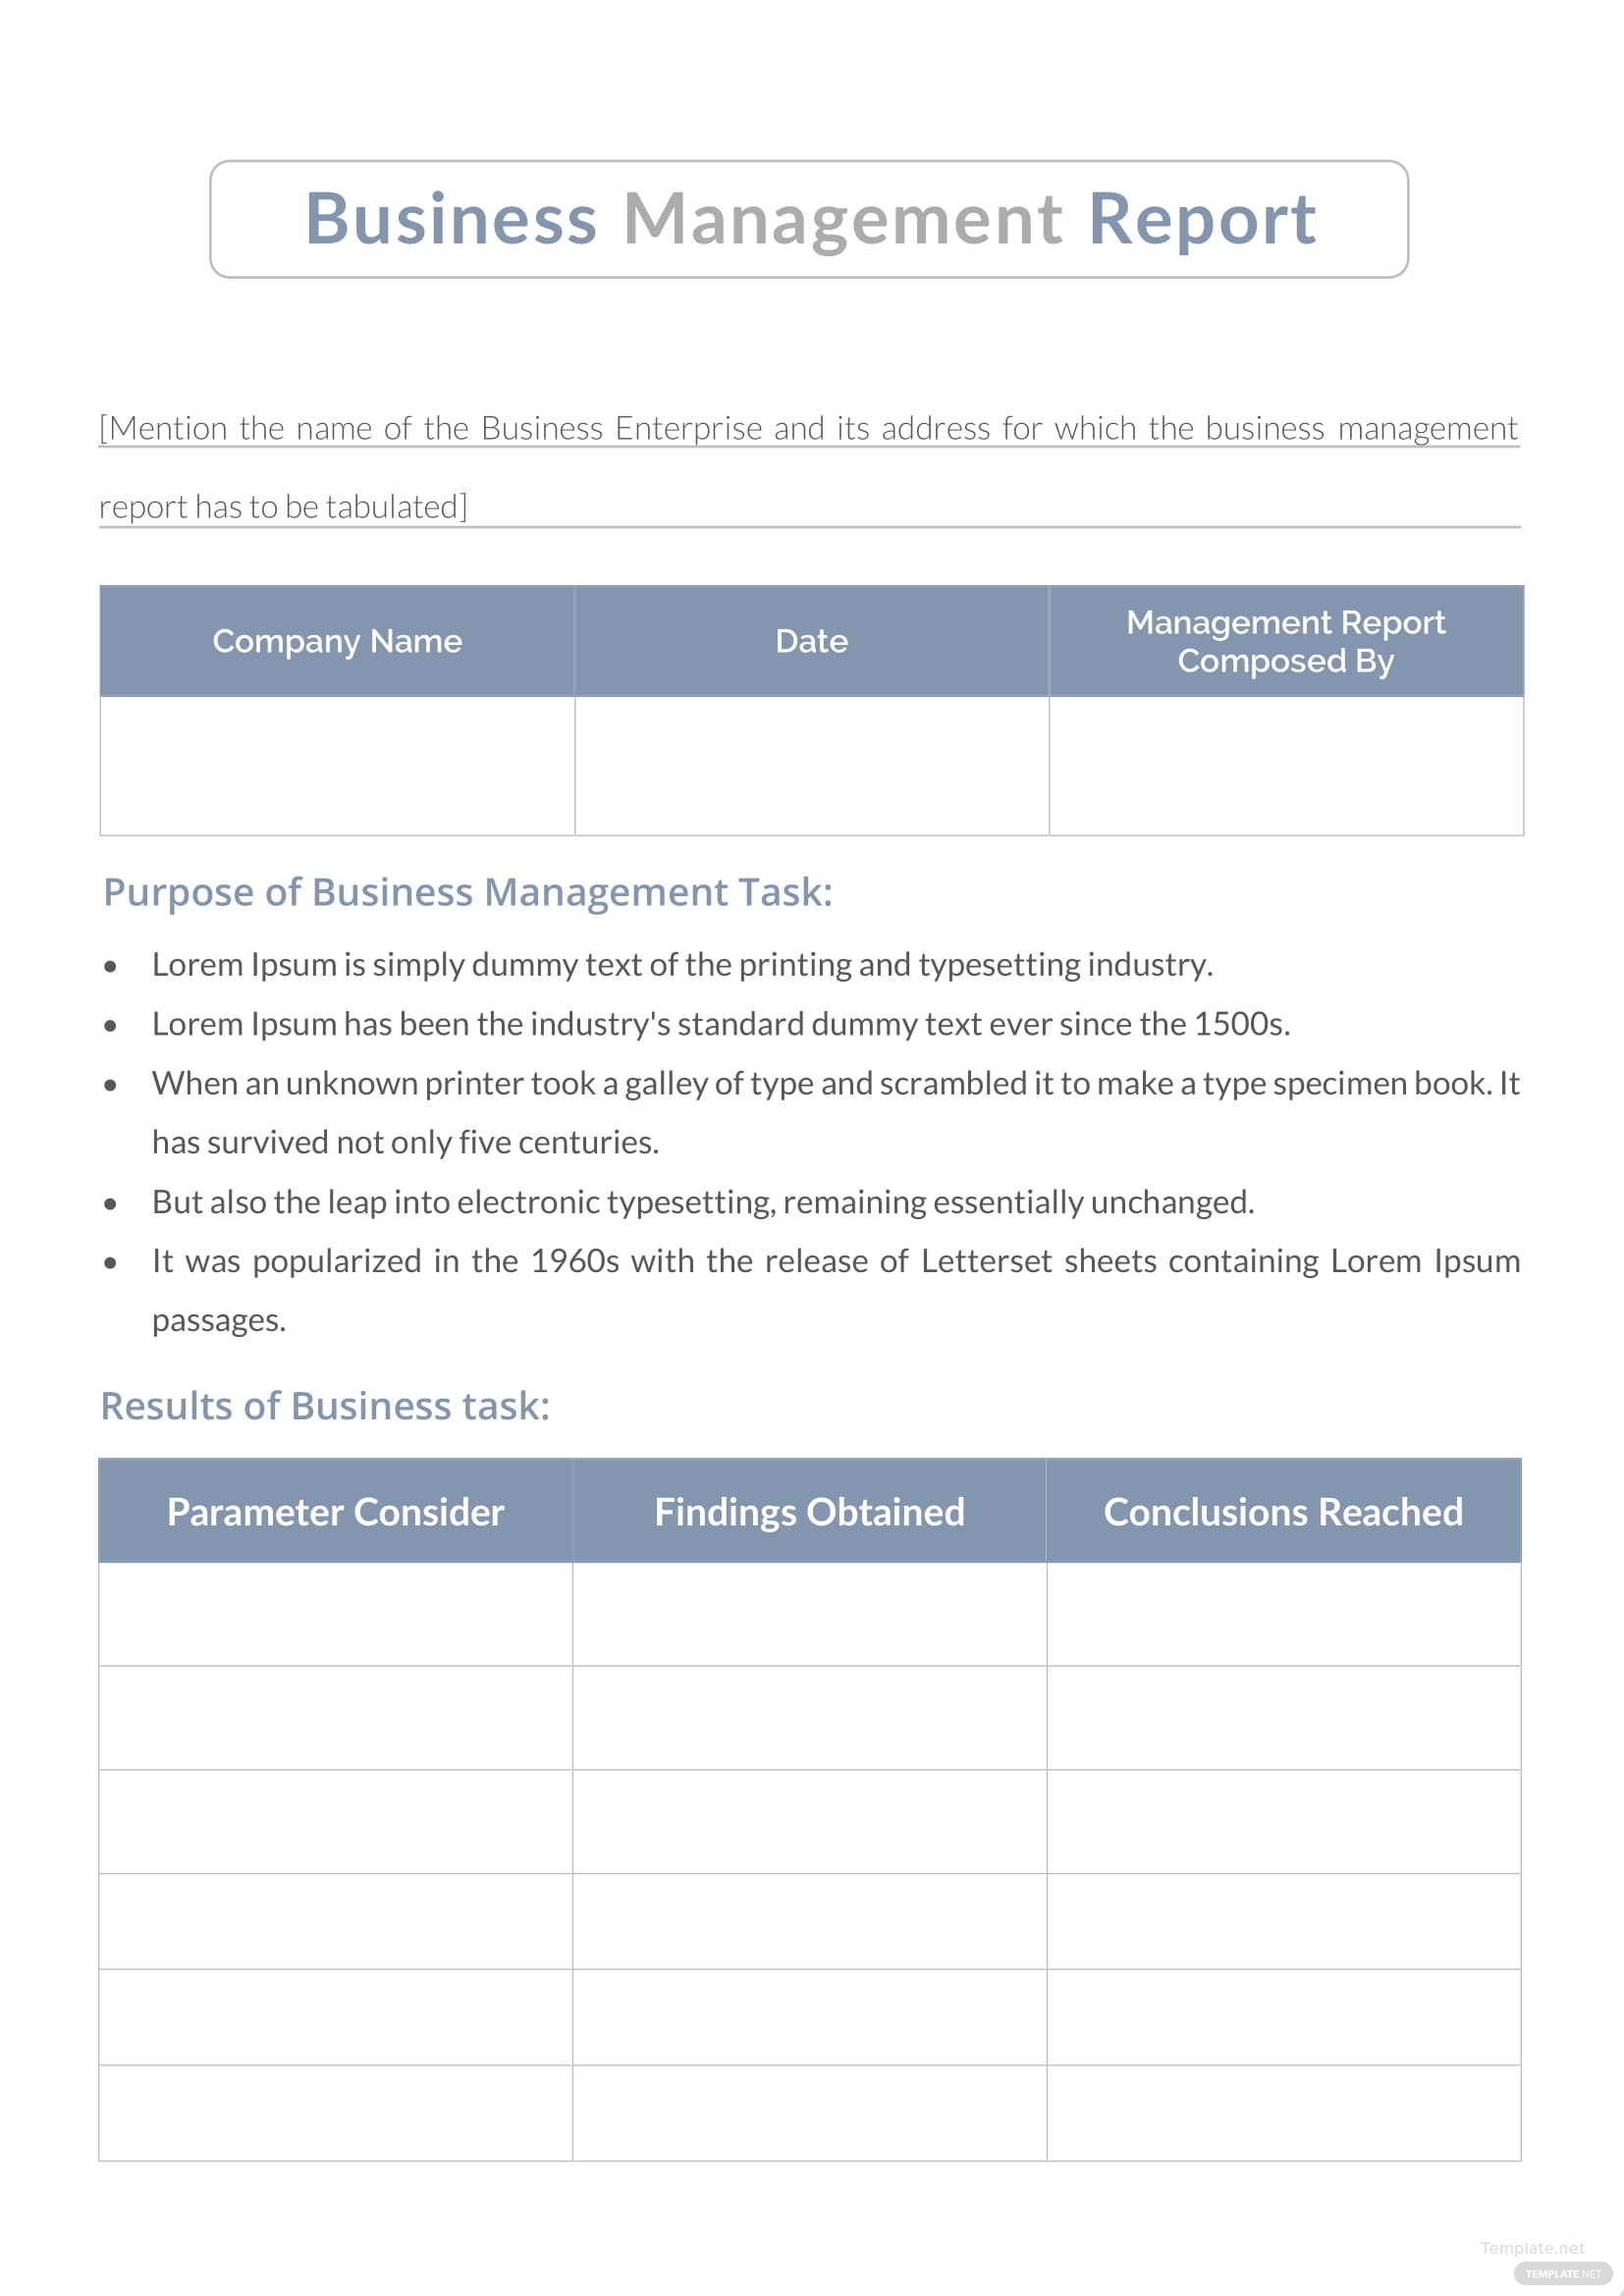 Business management report template in microsoft word template business management report template accmission Gallery